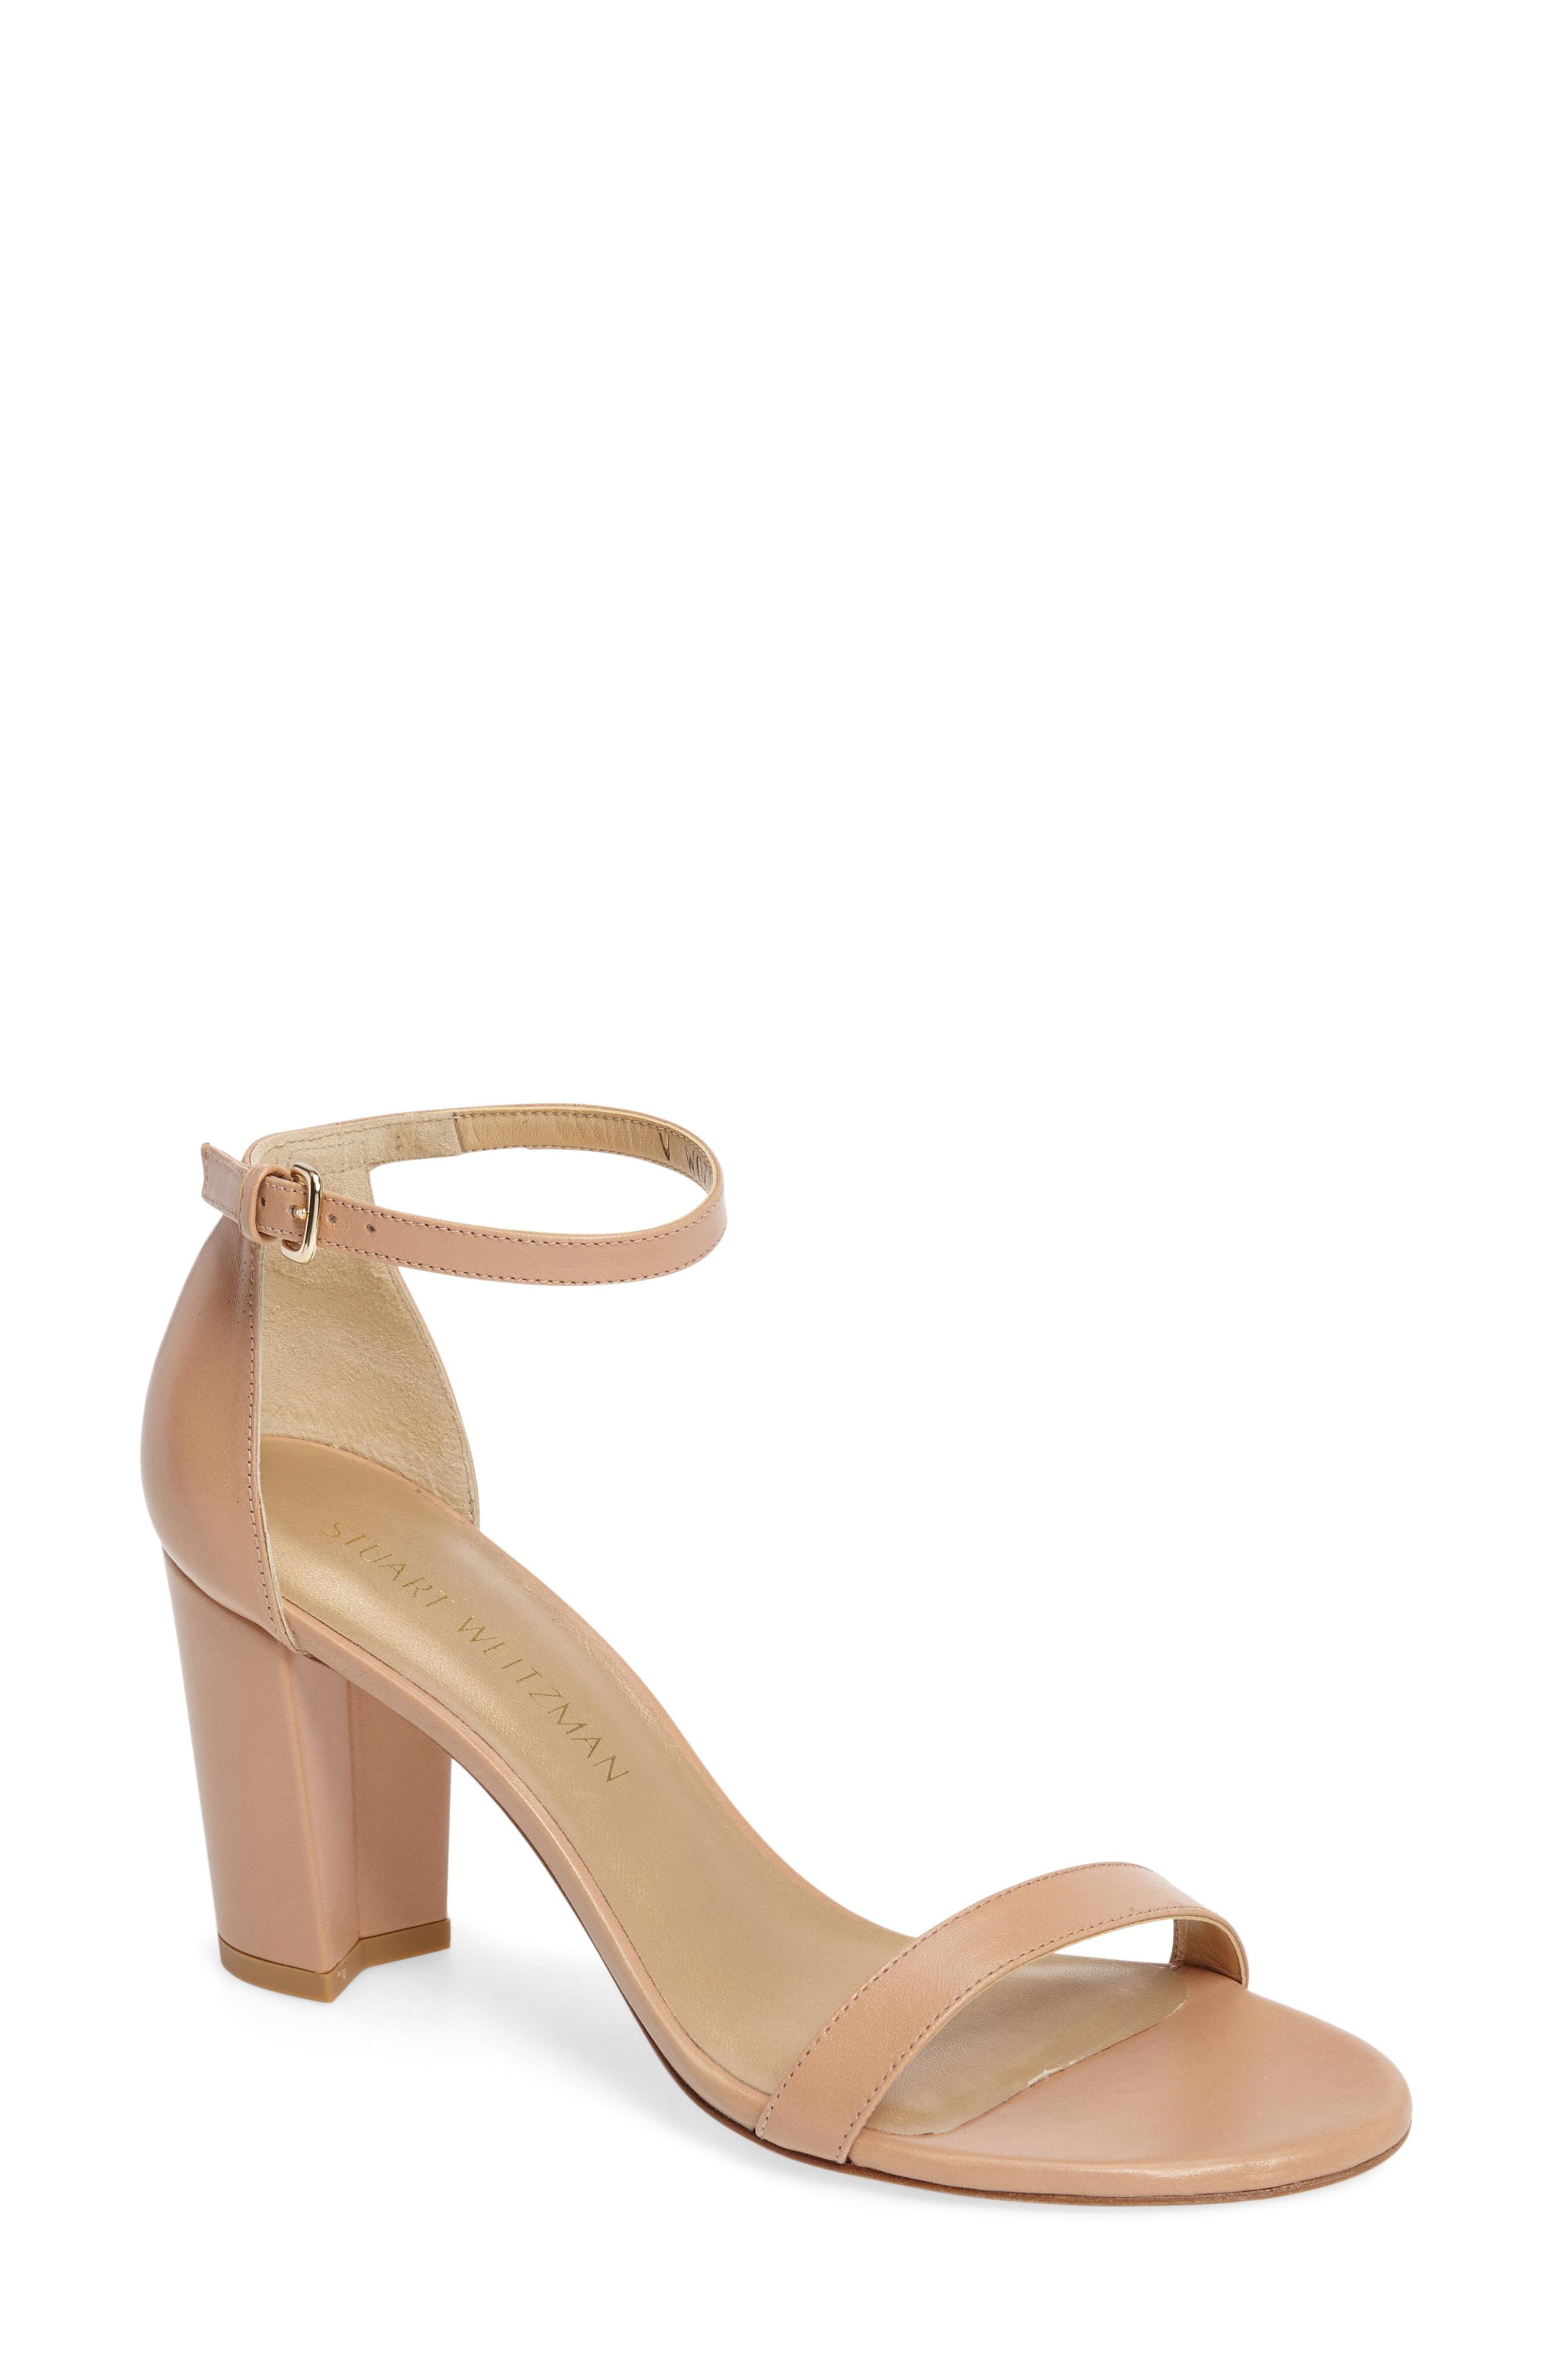 c8b0adcc6d5 Stuart Weitzman - Multicolor Nearlynude Ankle Strap Sandal - Lyst. View  fullscreen